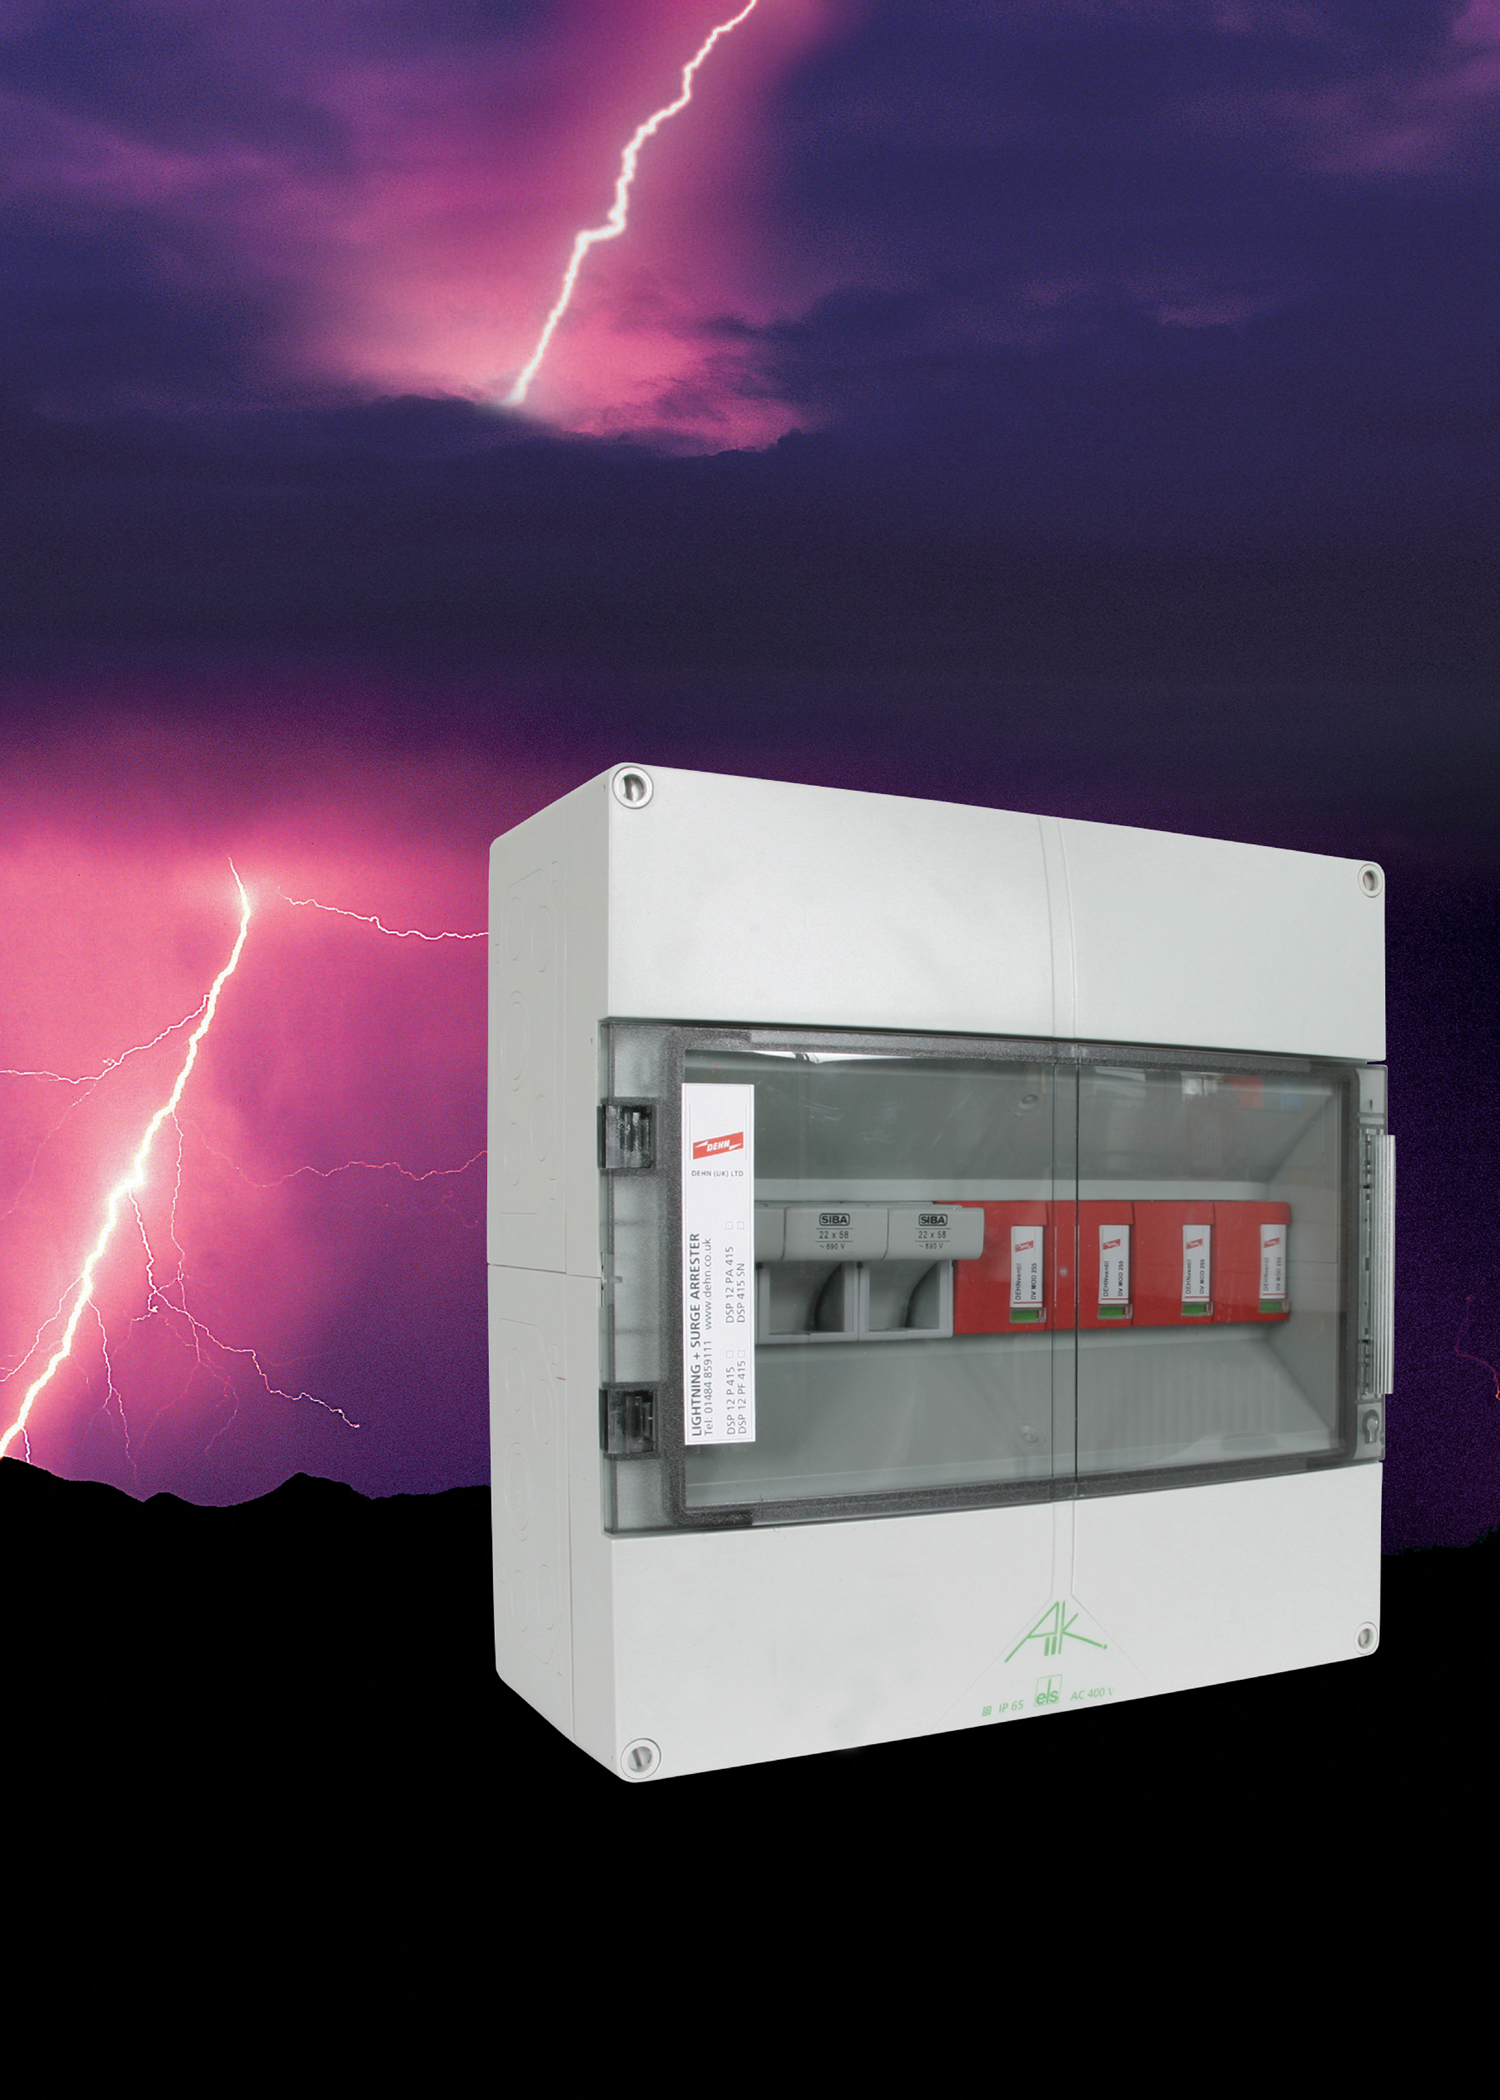 Ensuring effective protection against electrical surges